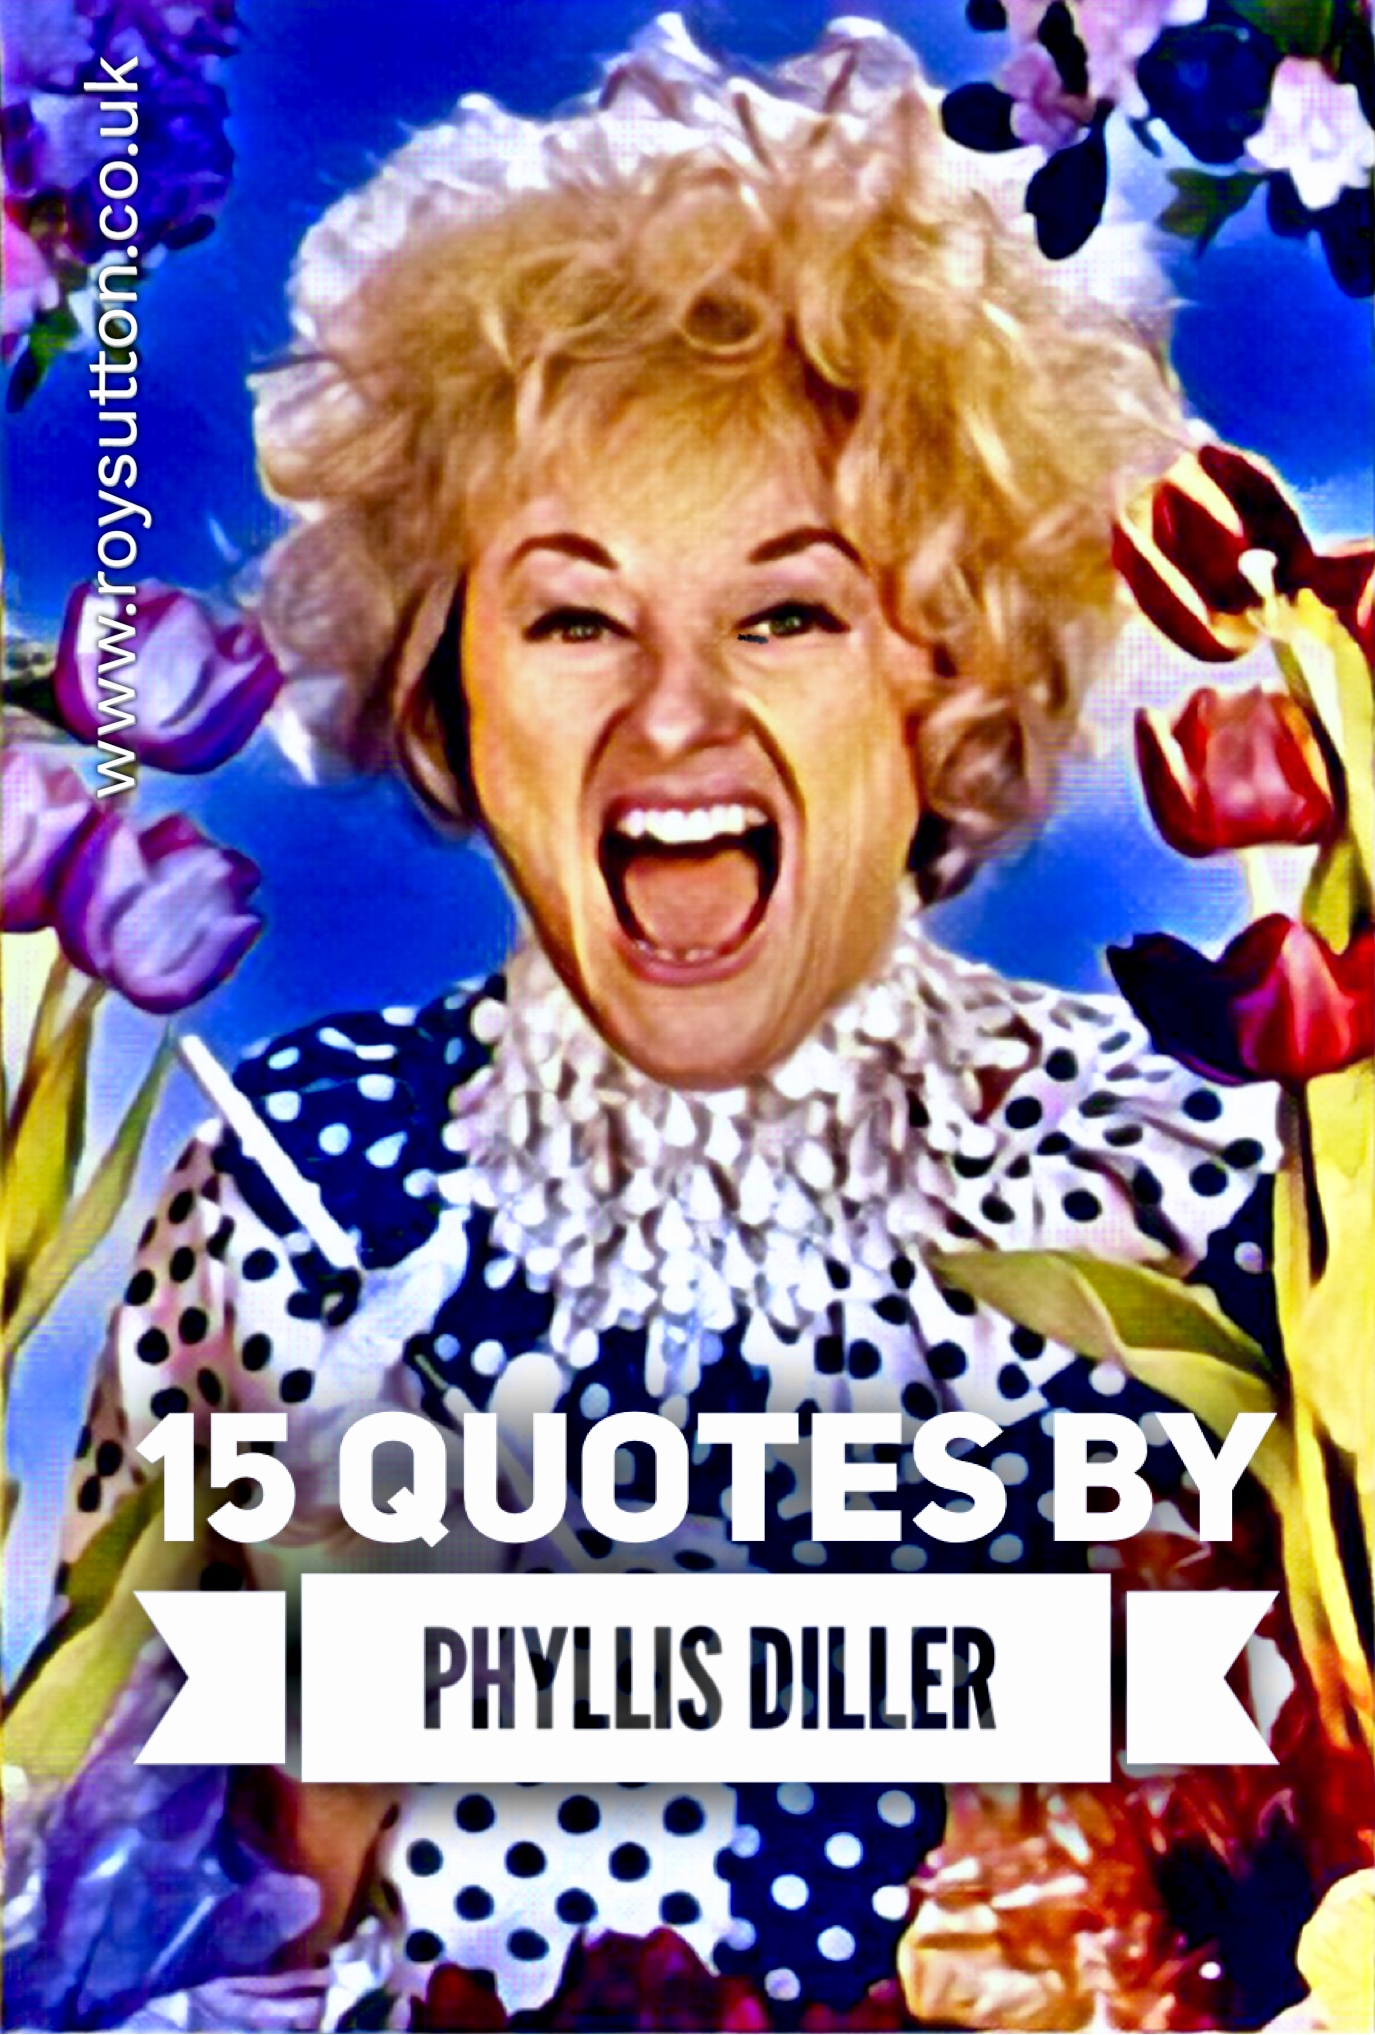 Phyllis Diller naked (63 photos), Topless, Leaked, Selfie, braless 2015